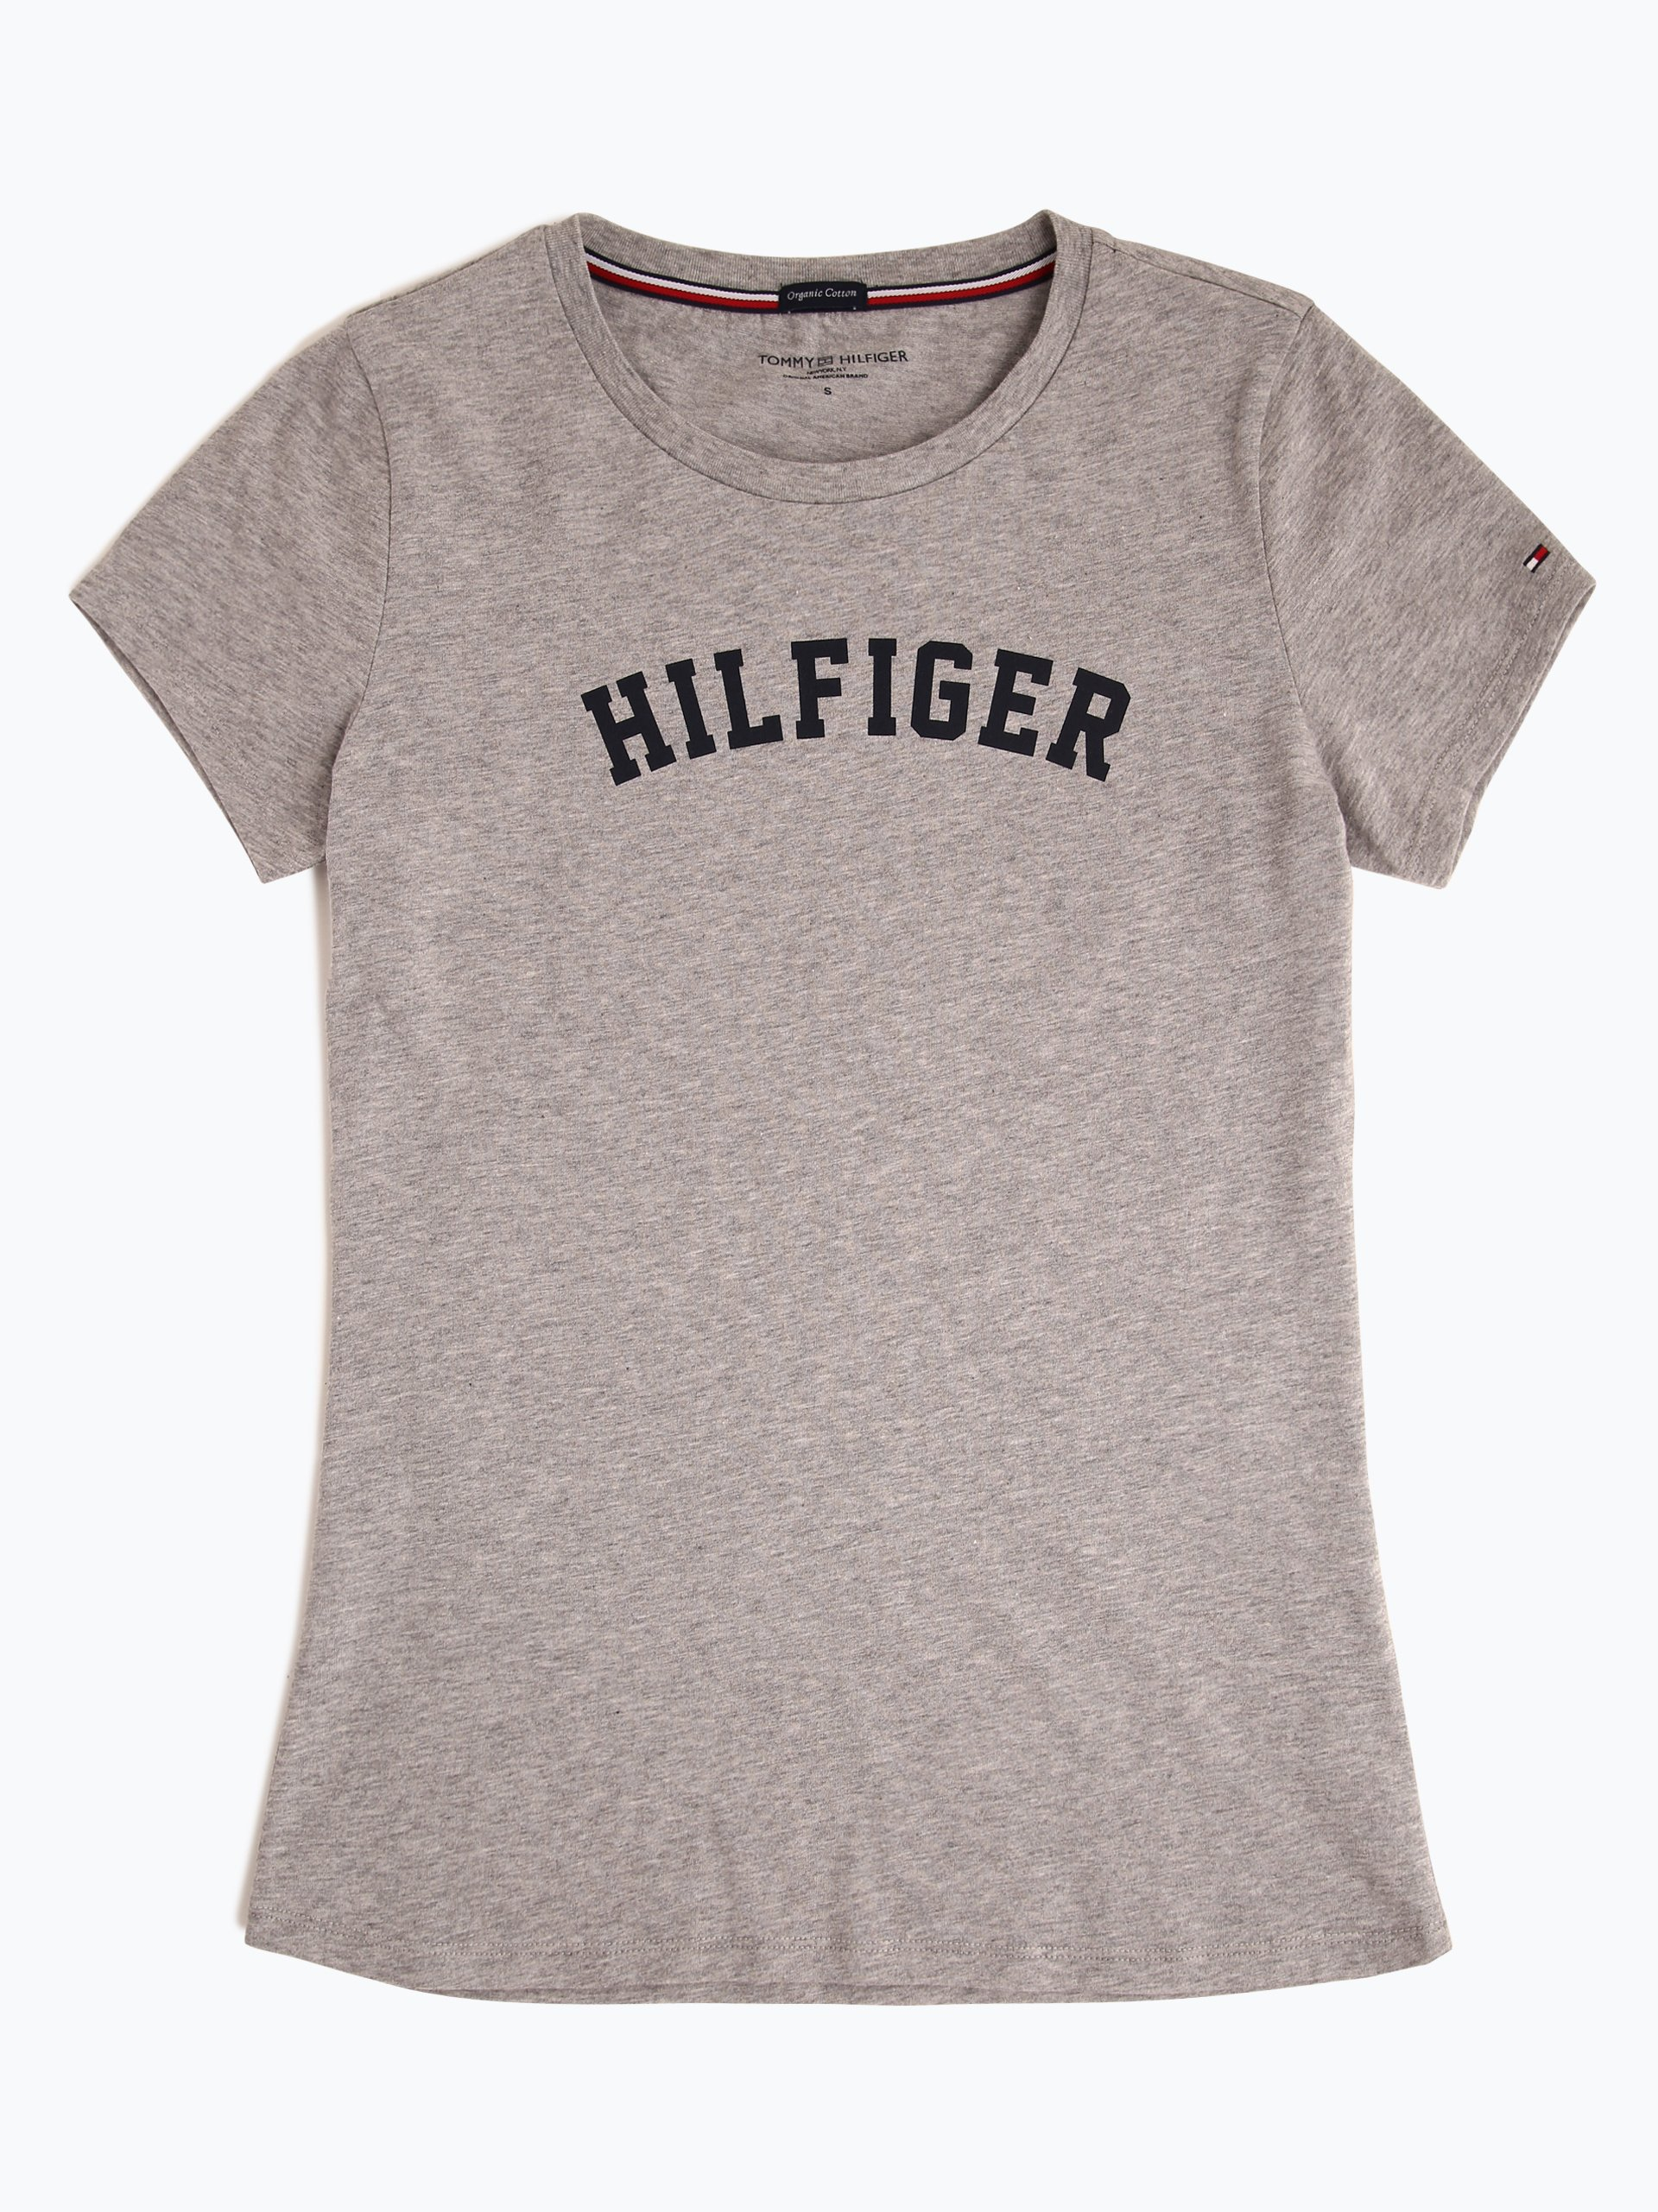 tommy hilfiger damen pyjama shirt online kaufen vangraaf com. Black Bedroom Furniture Sets. Home Design Ideas